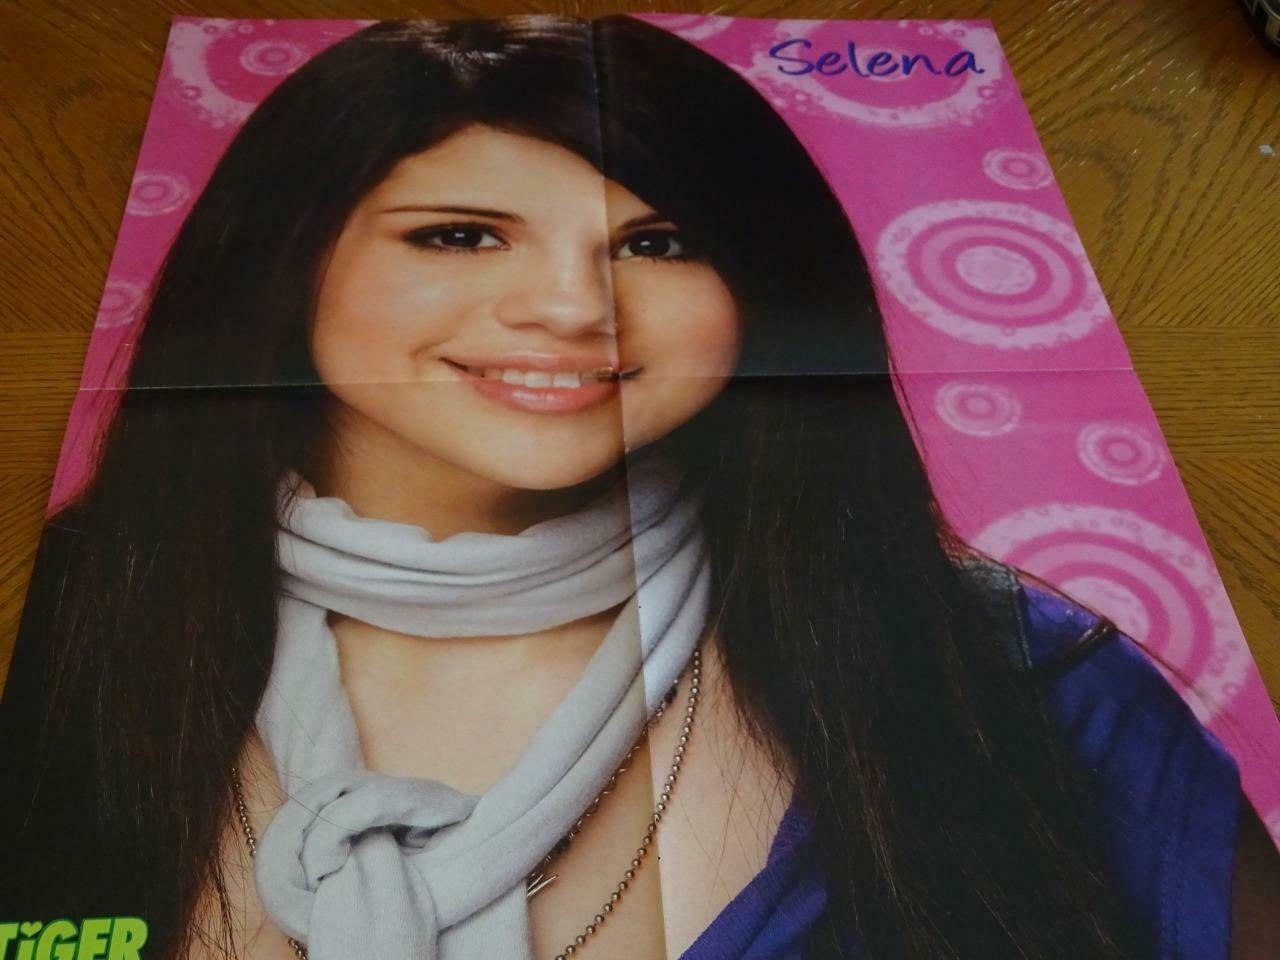 Primary image for Selena Gomez Jonas Brothers teen magazine poster clipping Nick Jonas Tiger Beat